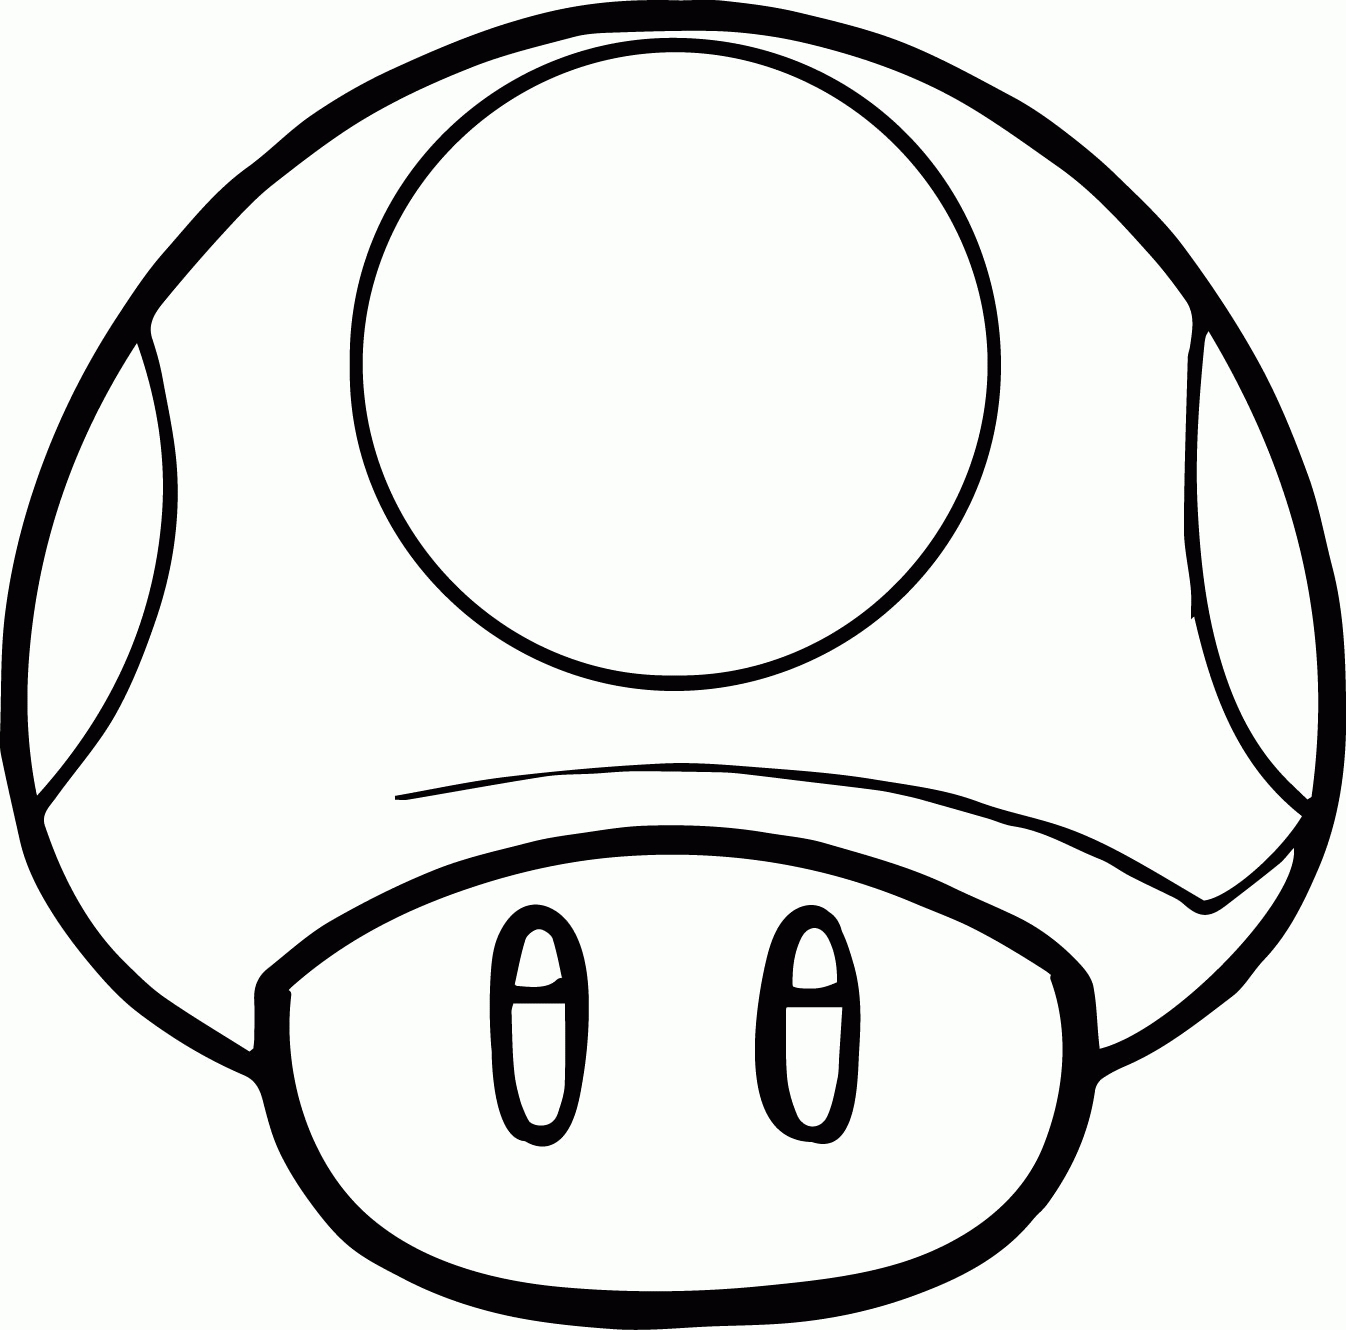 toad coloring pages from super mario toad mario drawing free download on clipartmag pages from coloring toad mario super